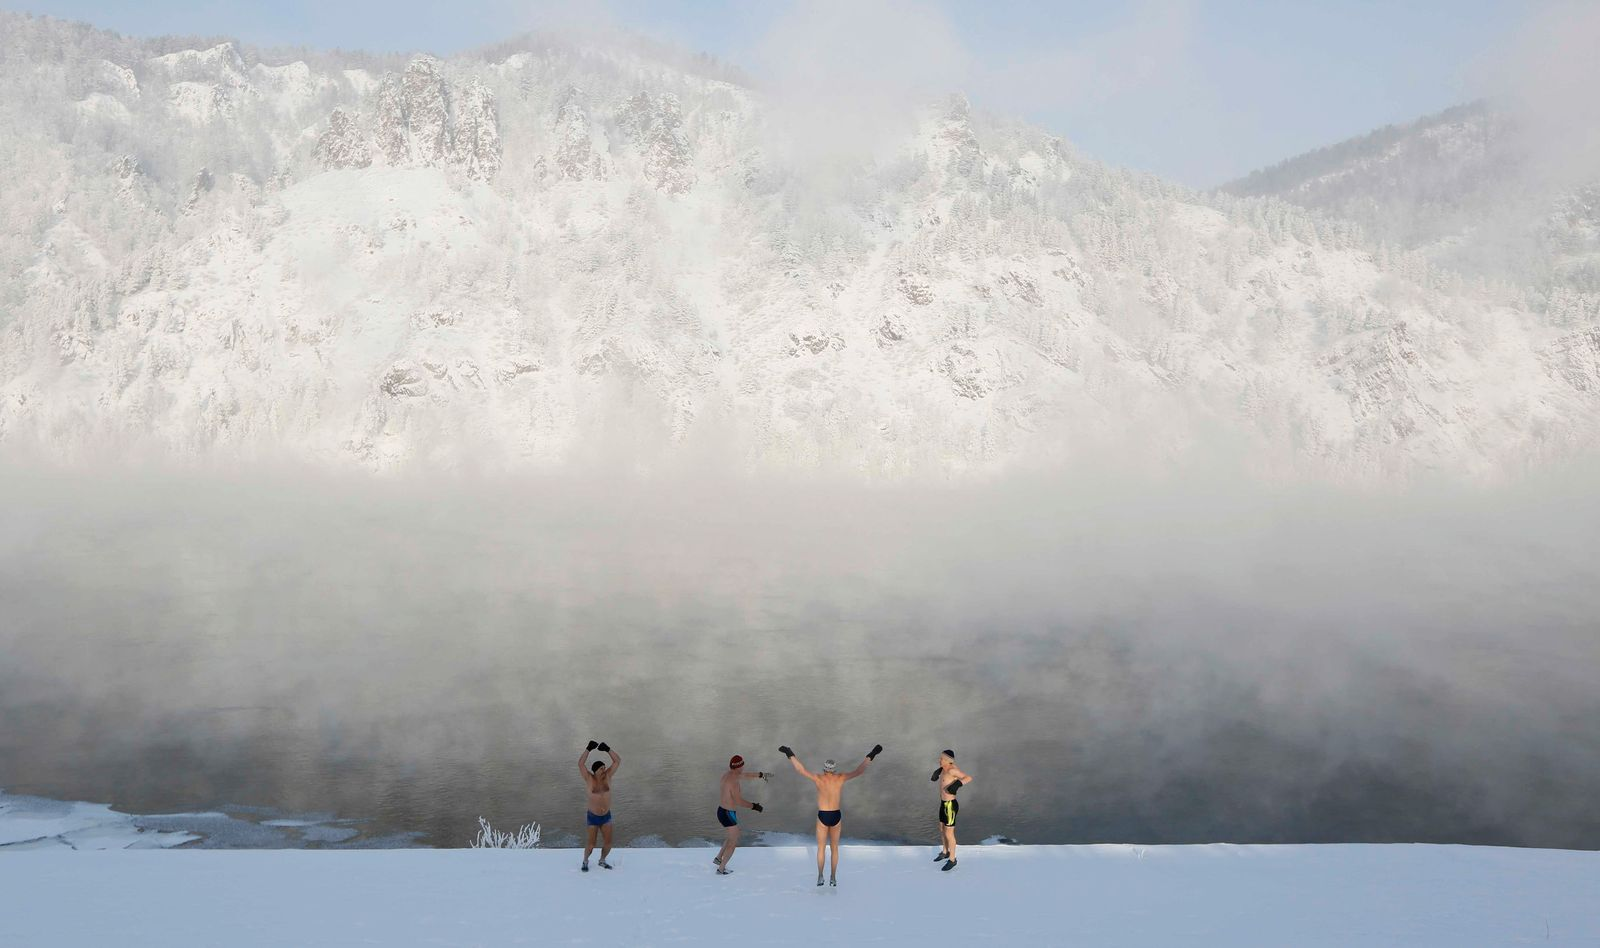 Members of the Dolphin winter swimming club warm up on the bank of the Yenisei River ahead of their weekly bathing session in Divnogorsk